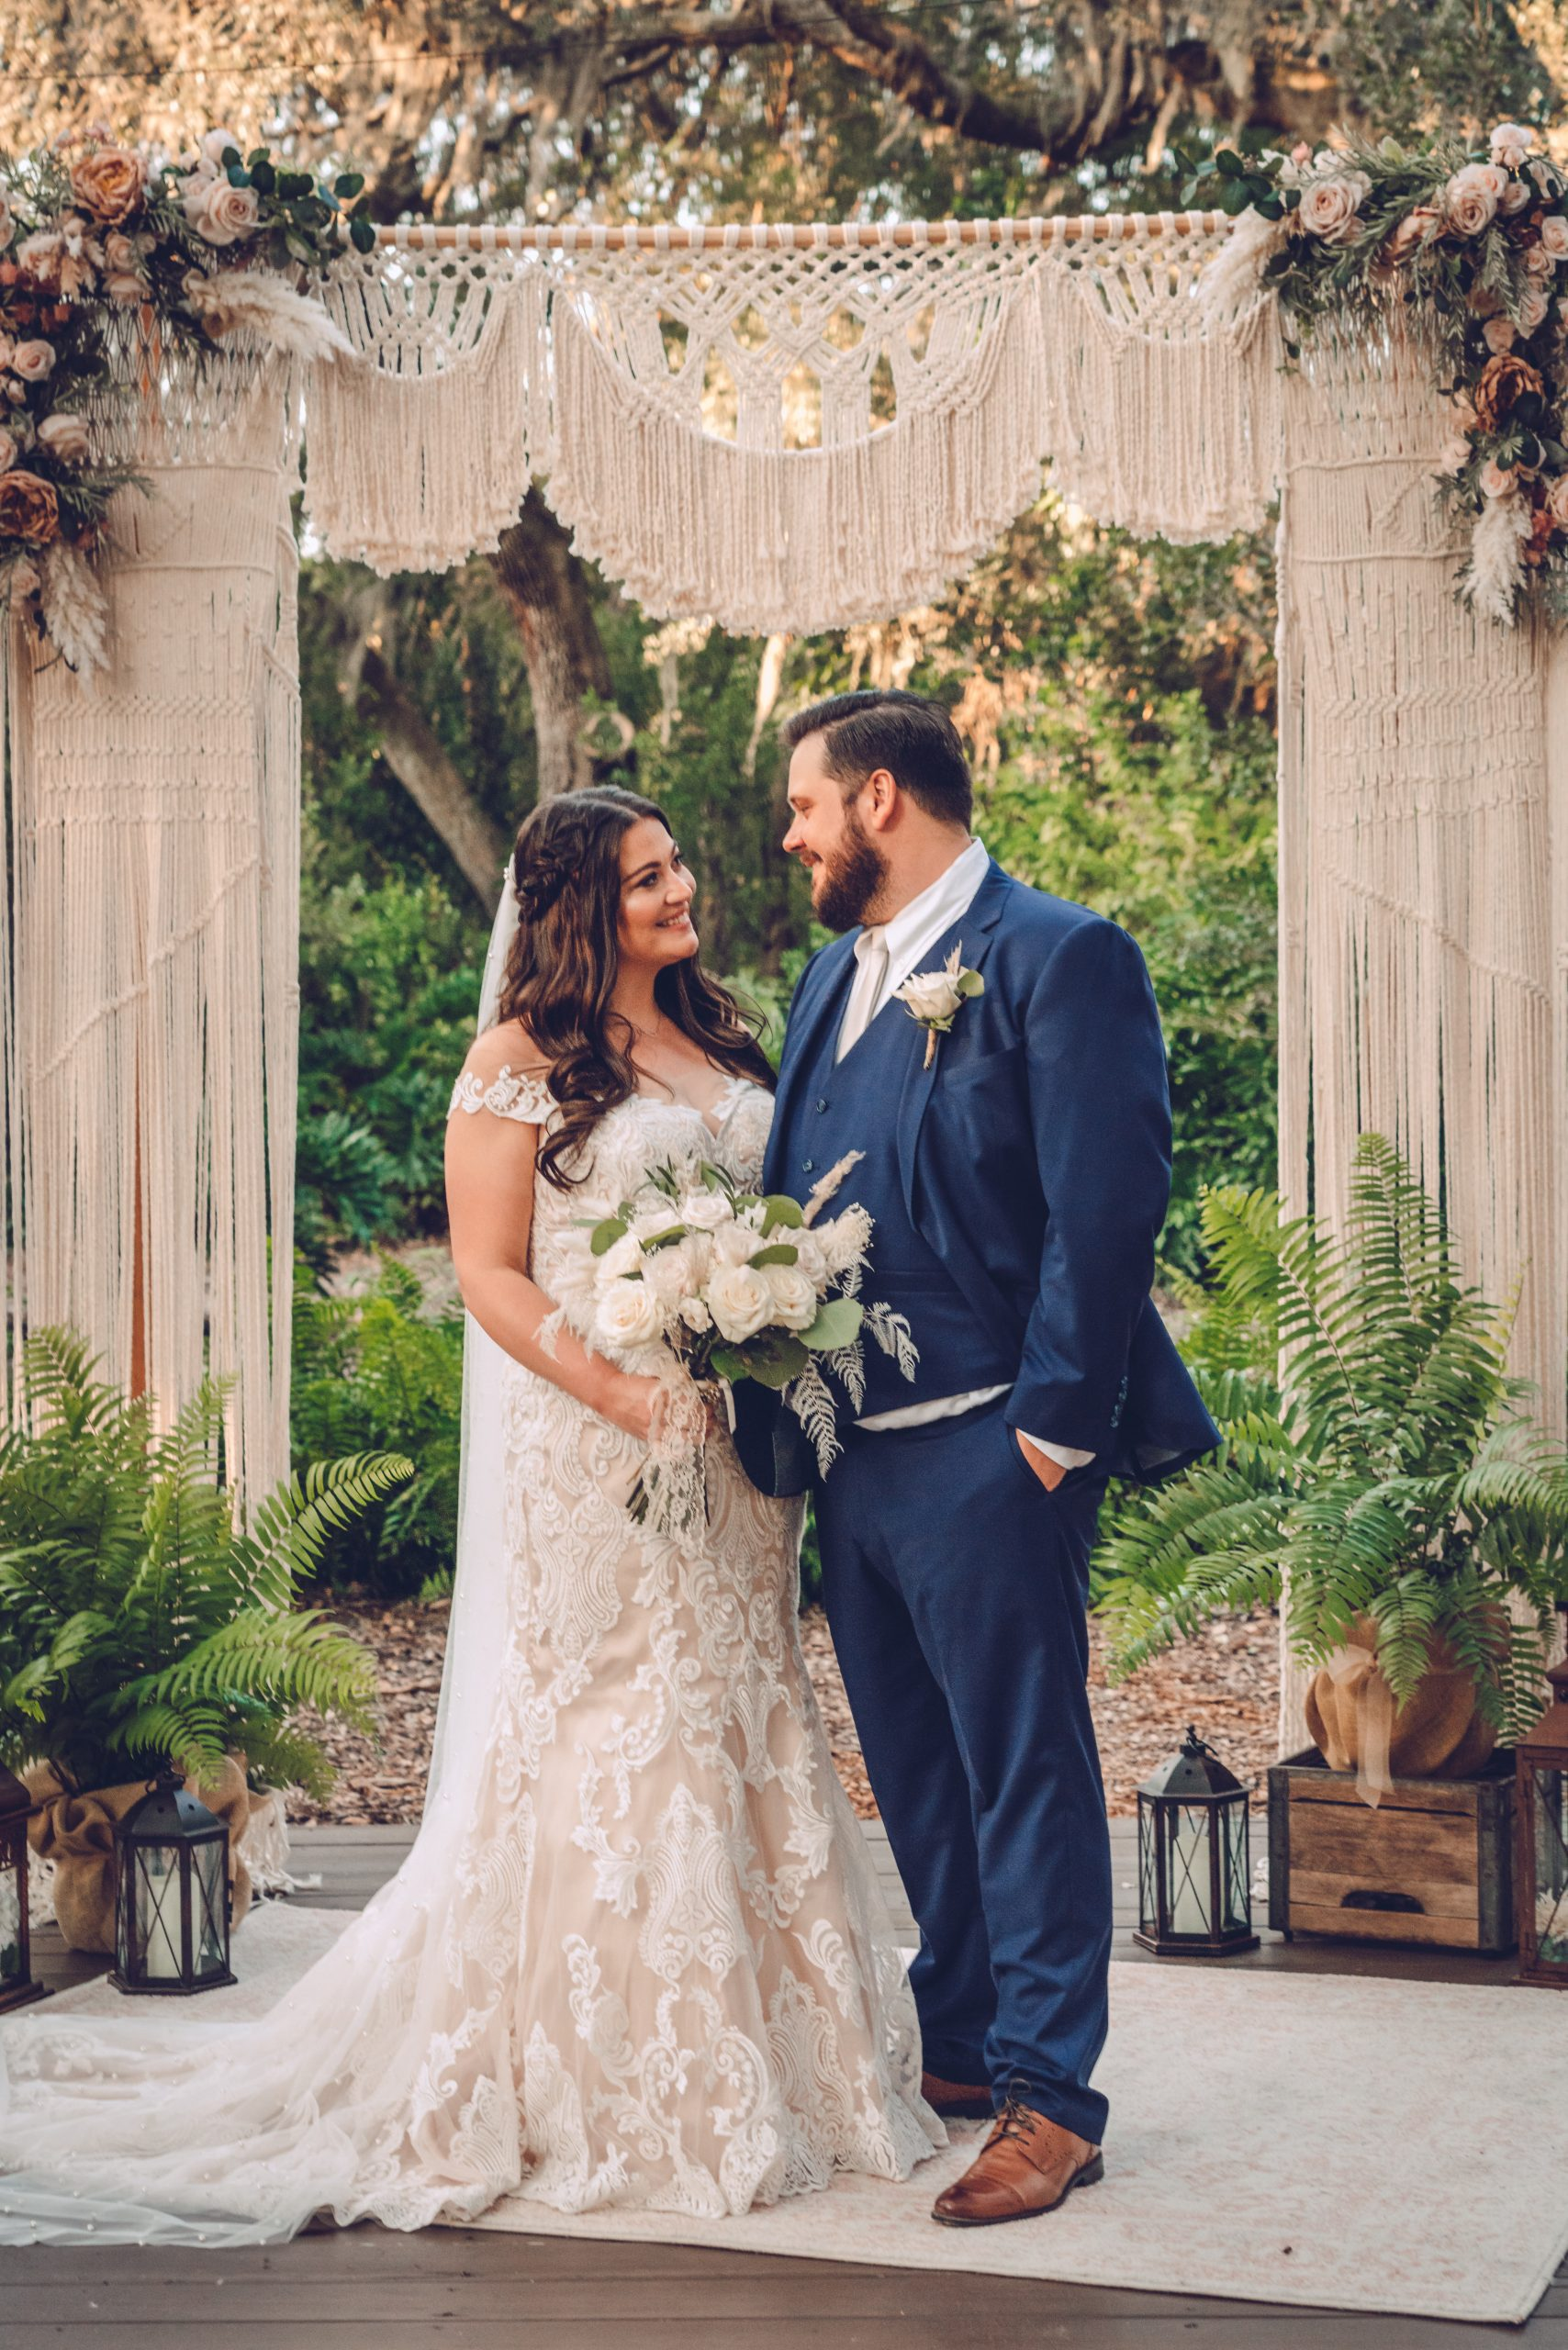 Tiffany + Nick's Boho Garden Micro Wedding